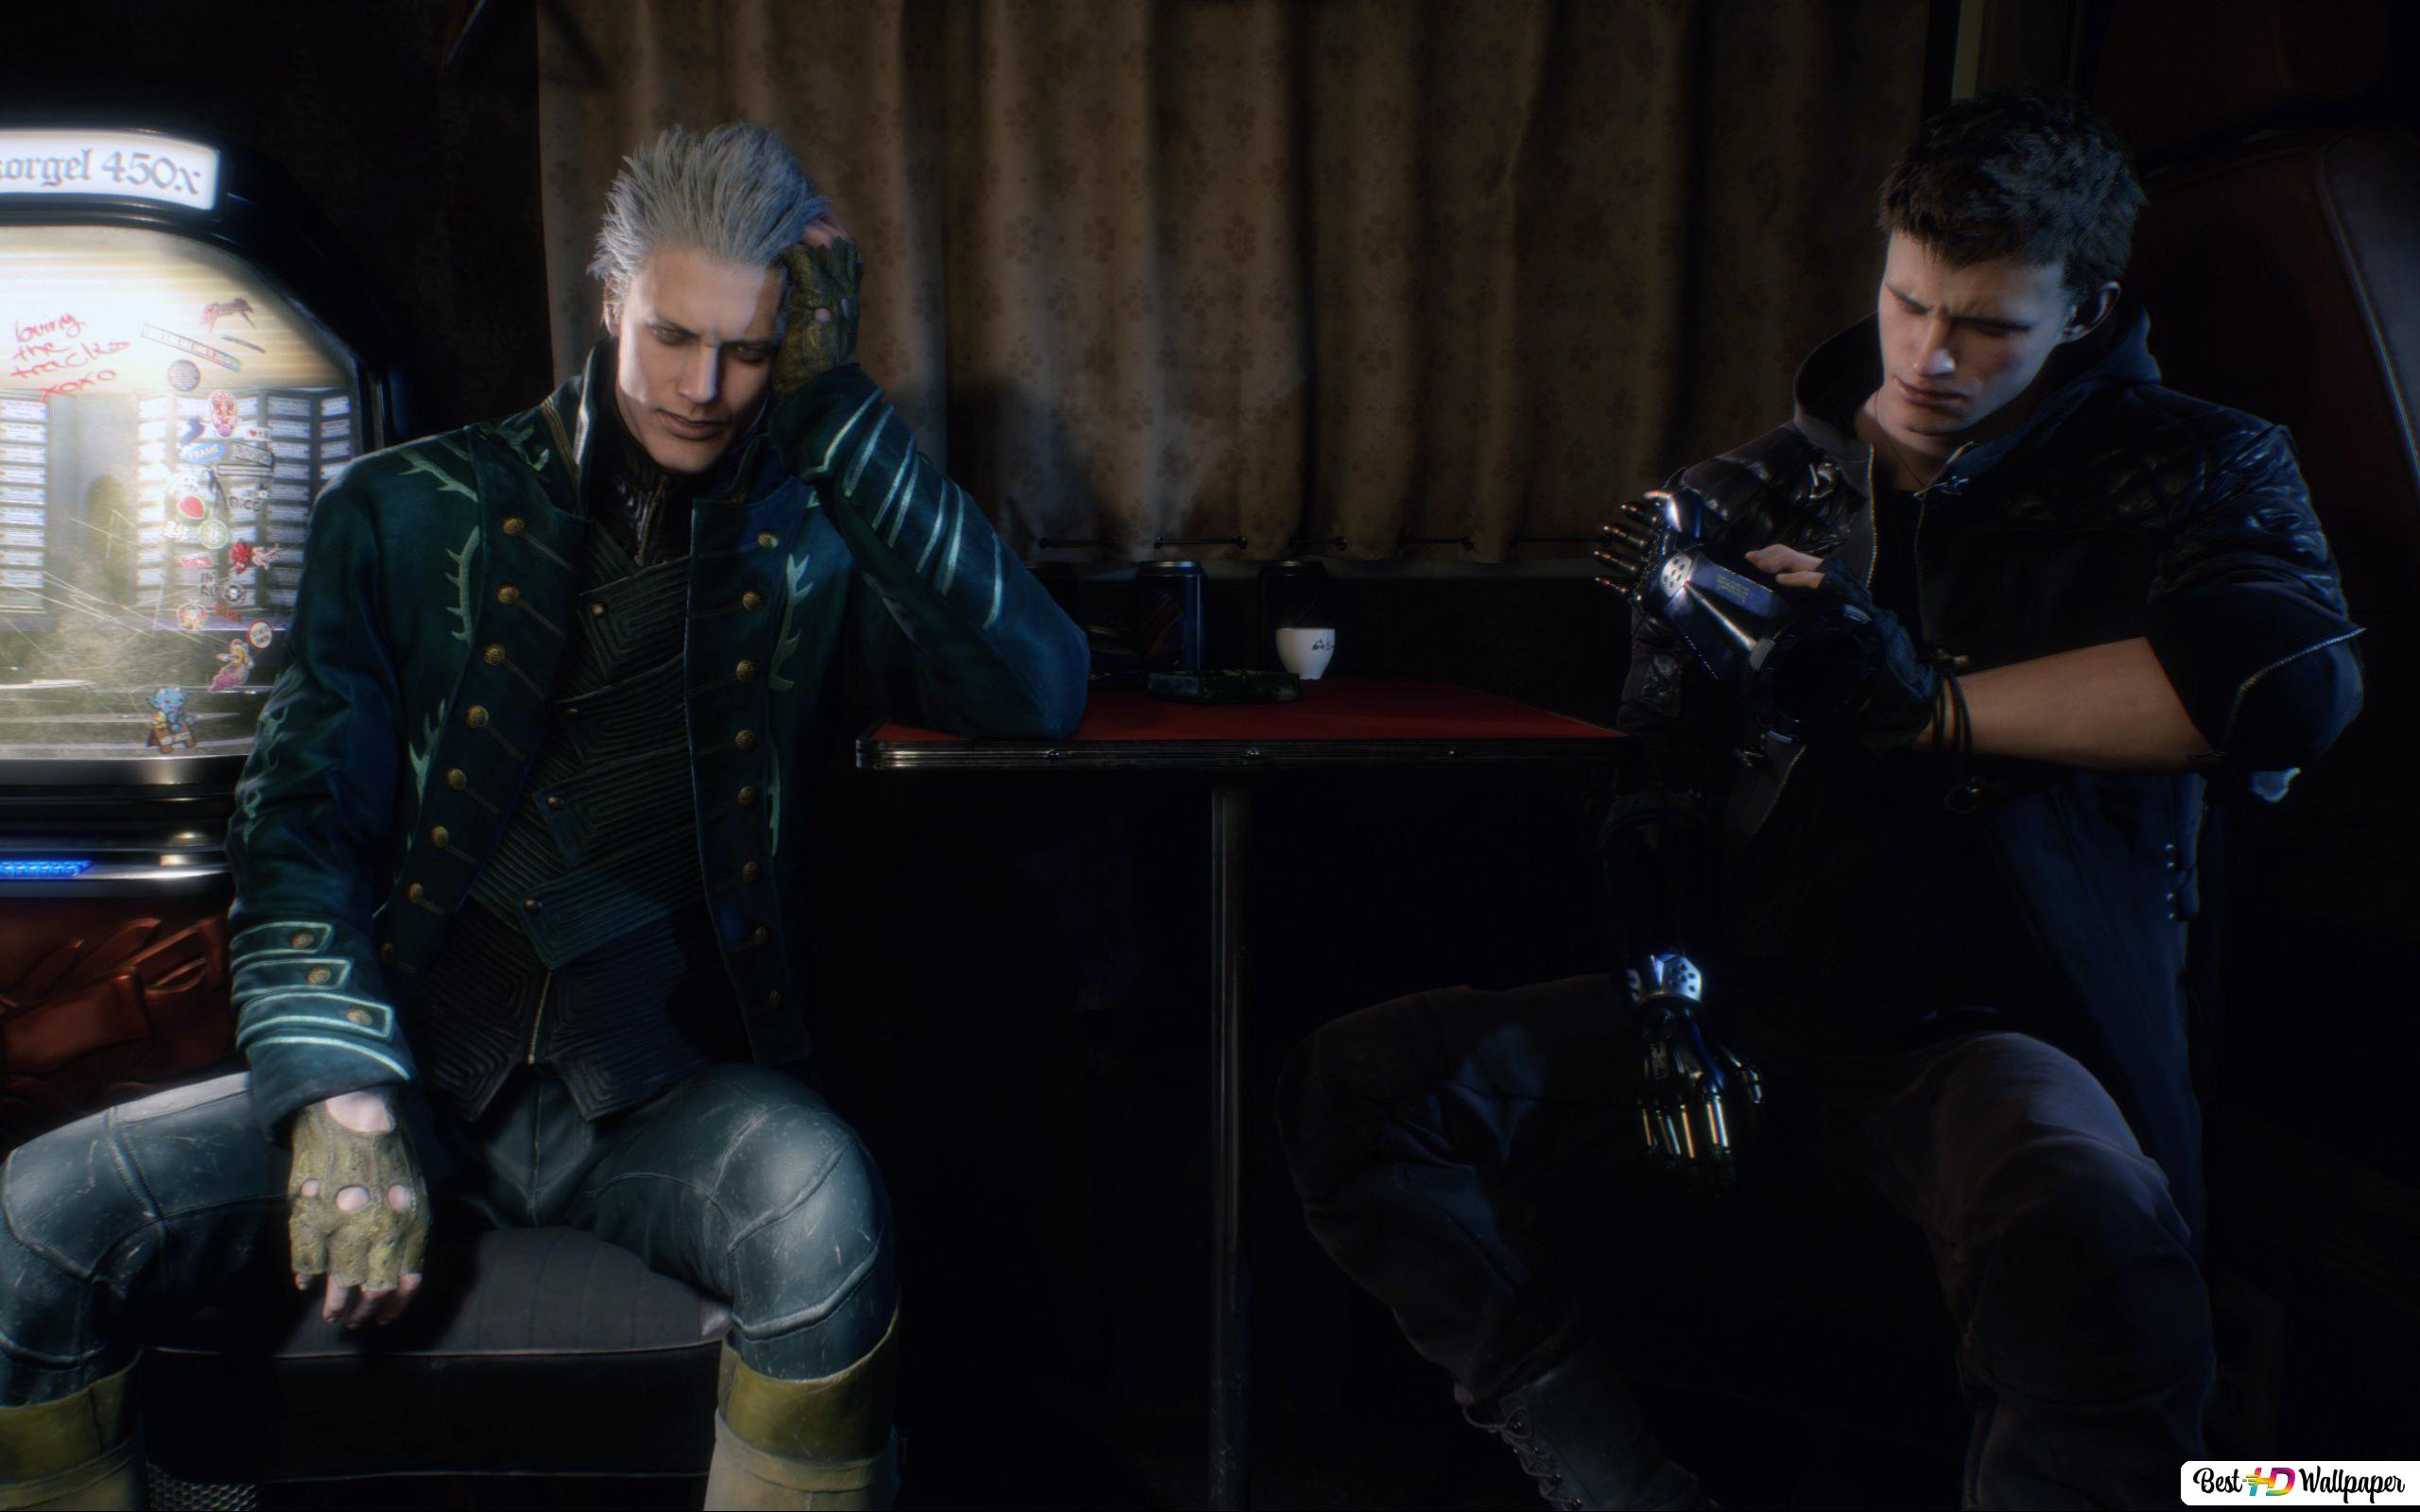 Devil May Cry 5 Vergil Nero Hd Wallpaper Download